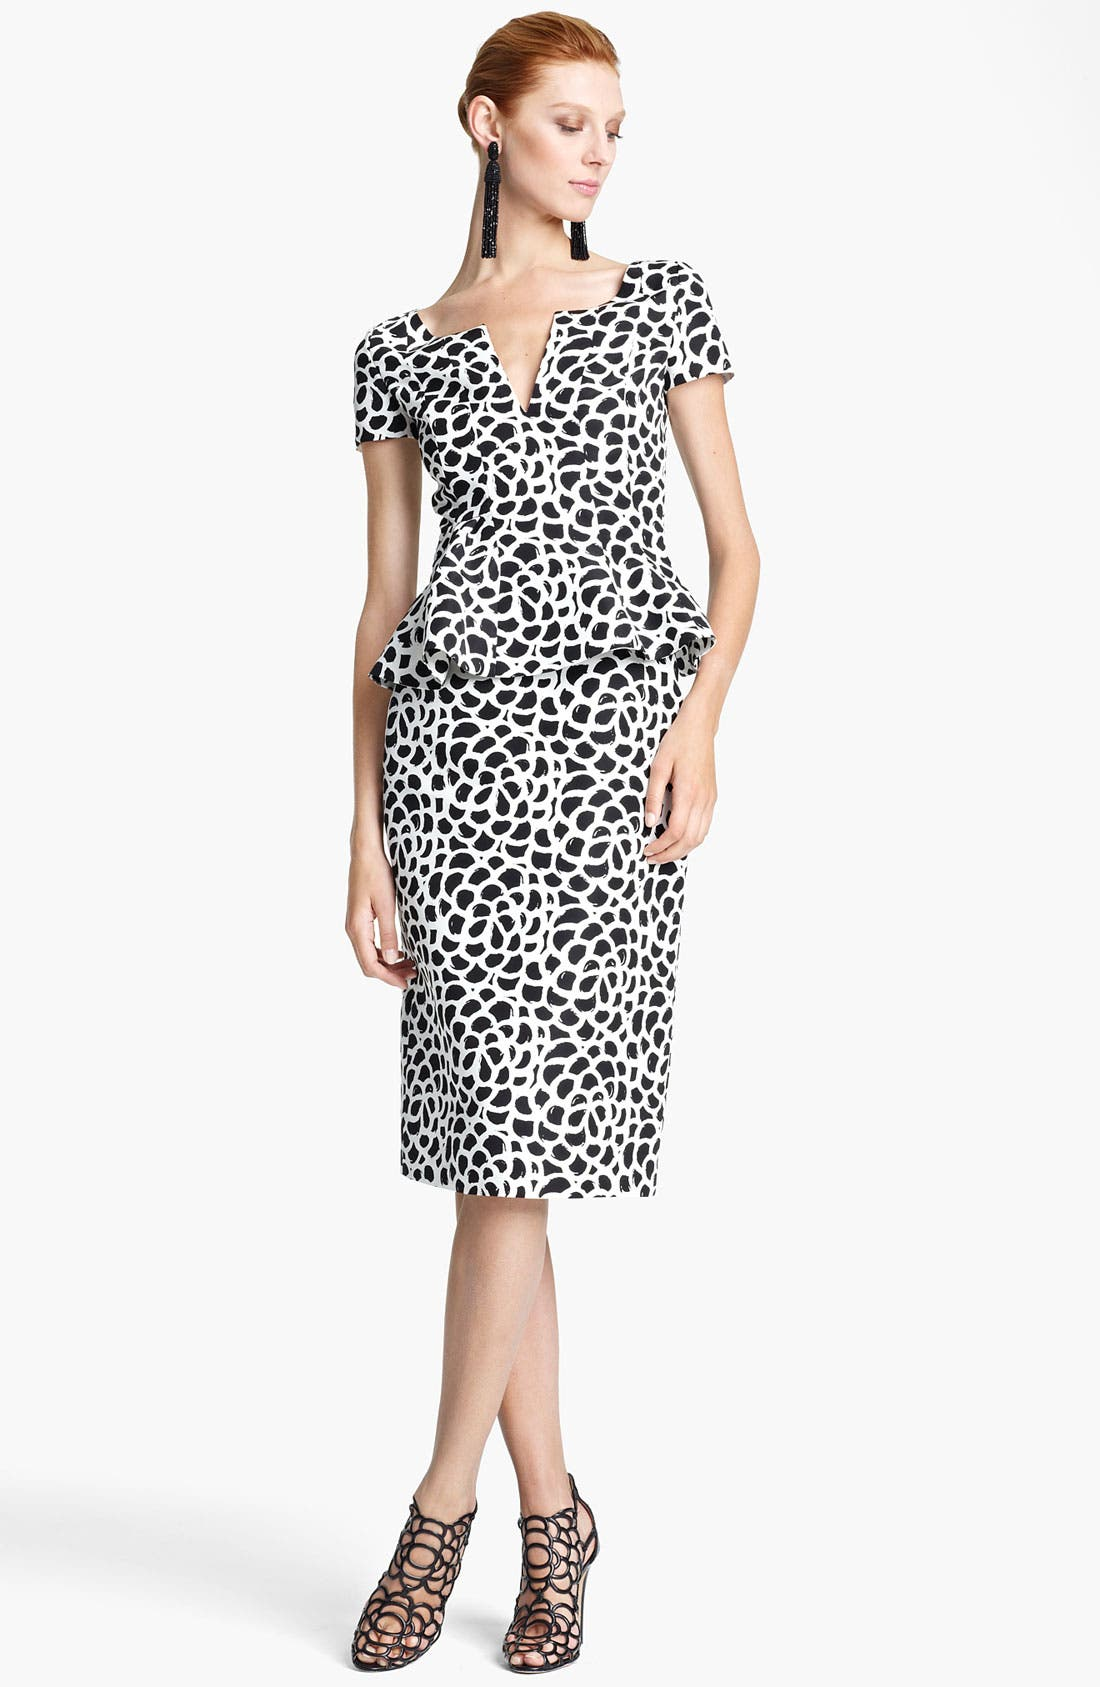 Main Image - Oscar de la Renta Print Silk Faille Dress